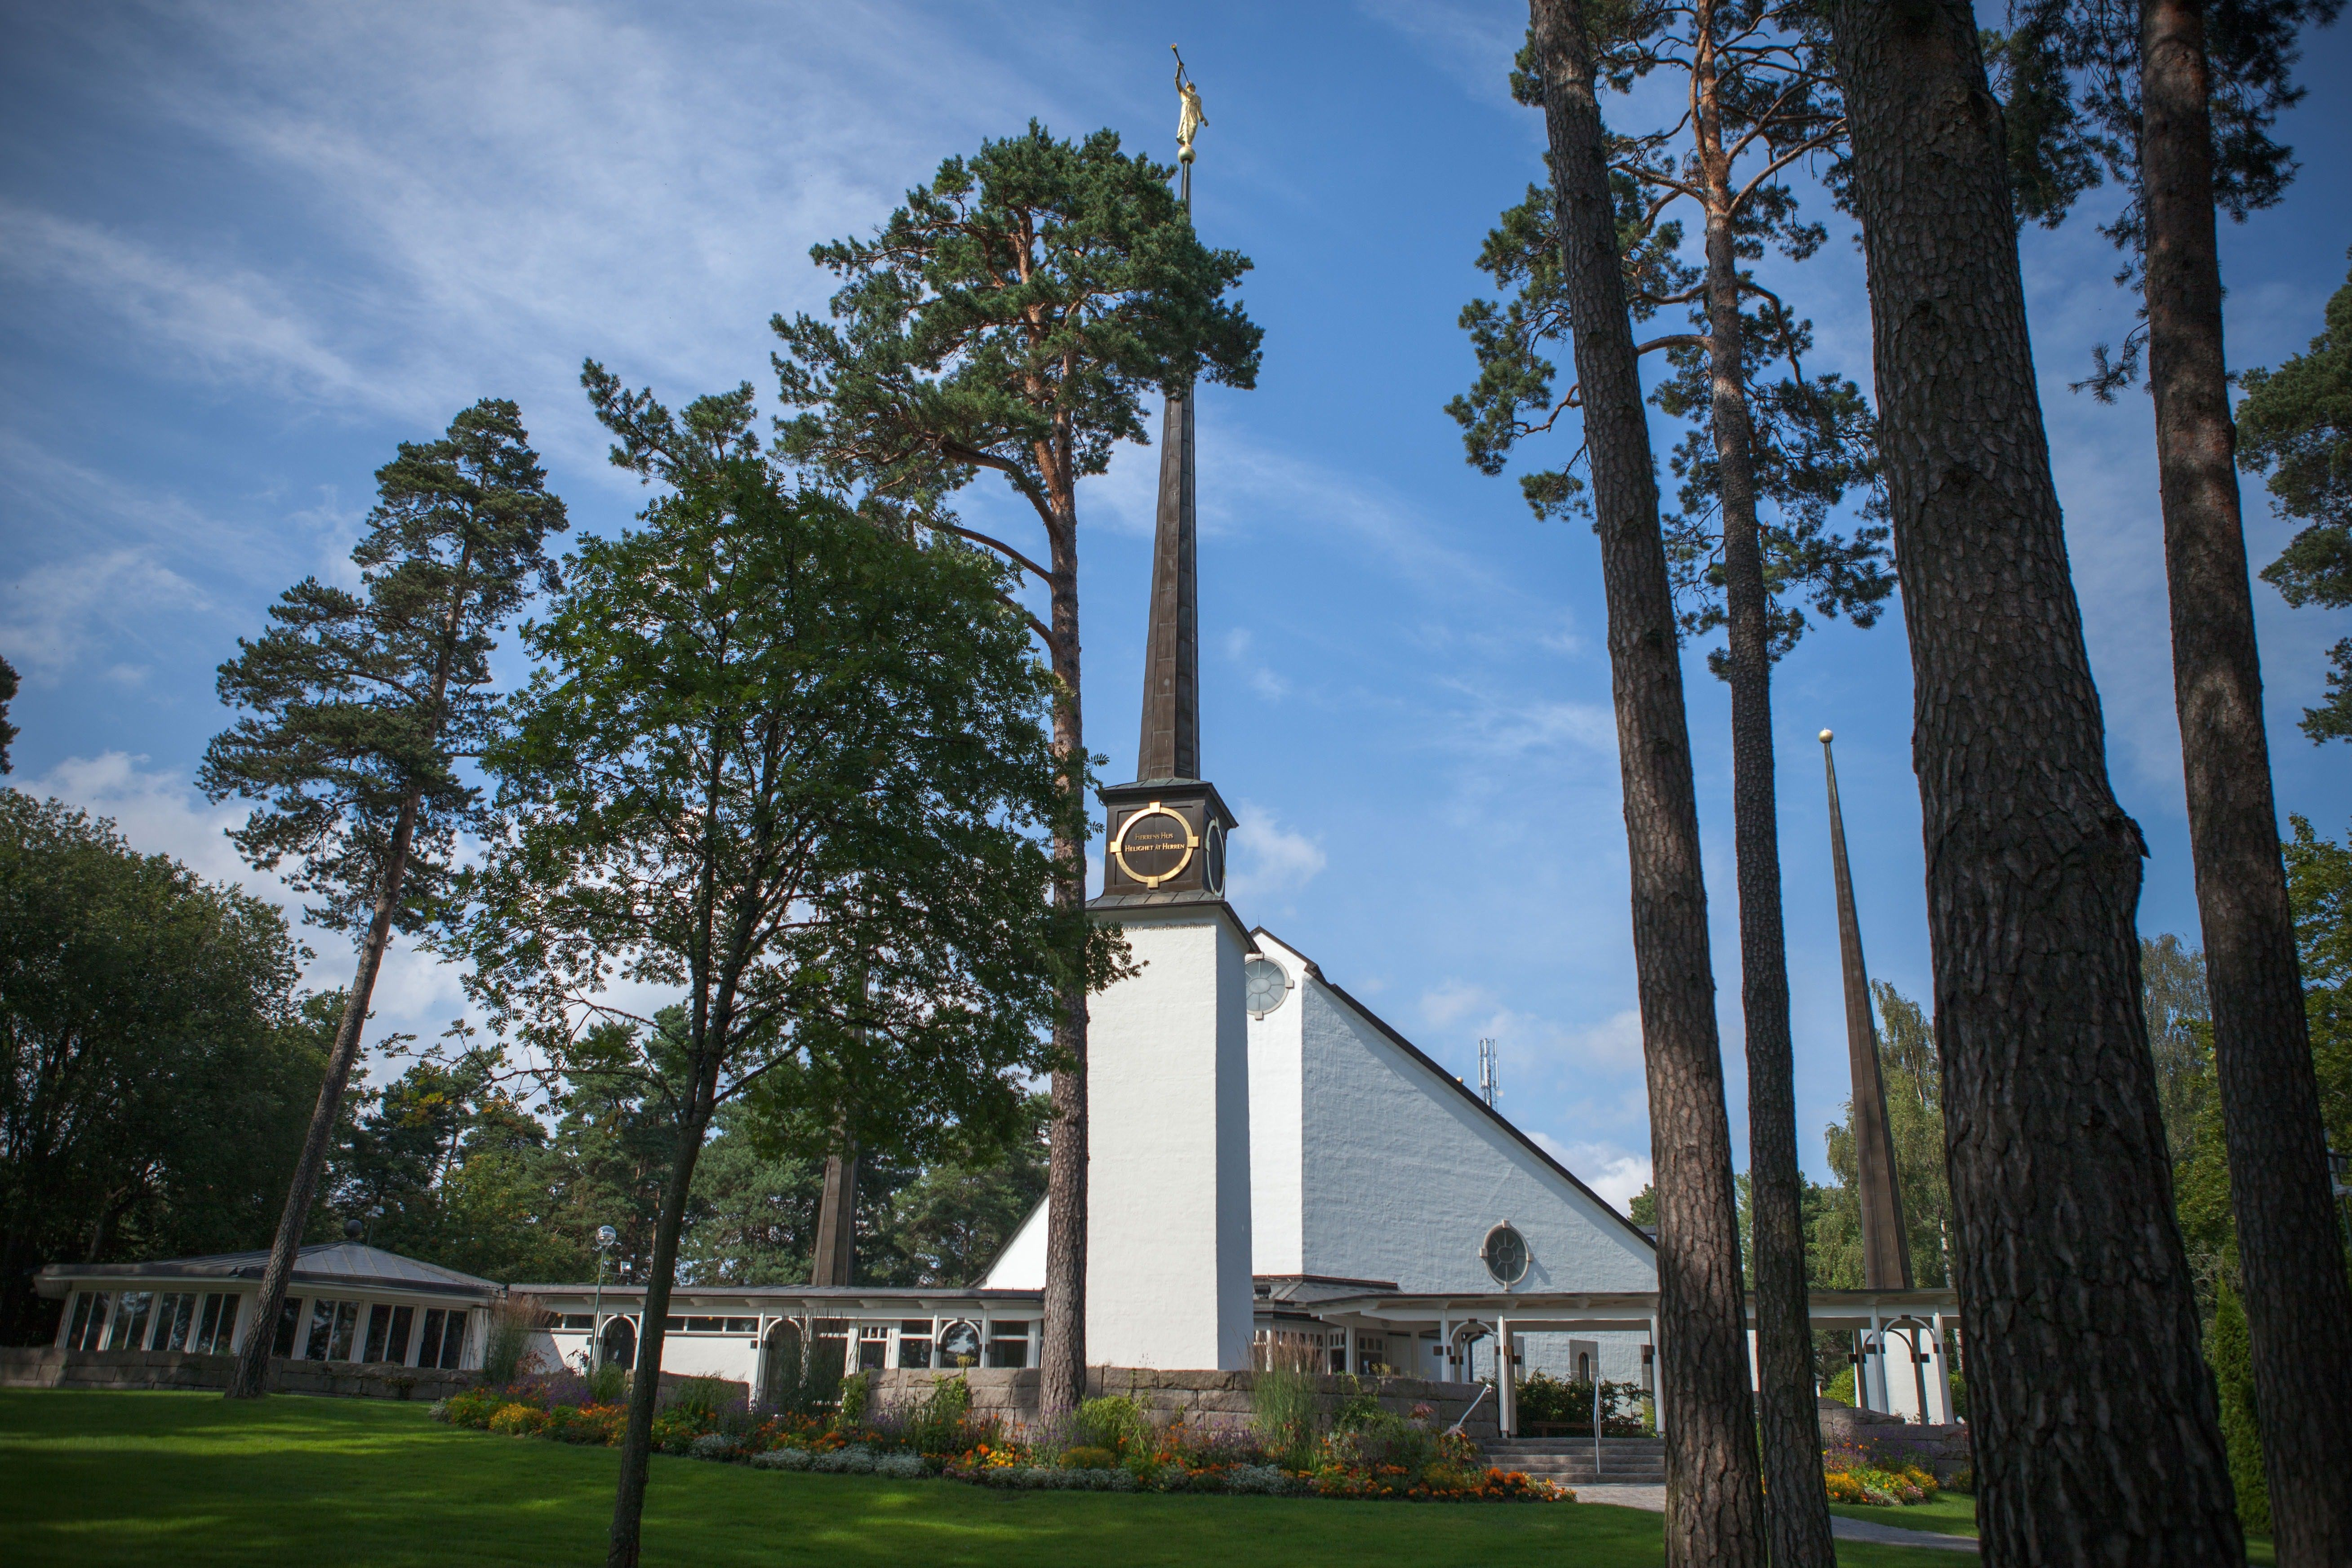 The Stockholm Sweden Temple, including the entrance and scenery.